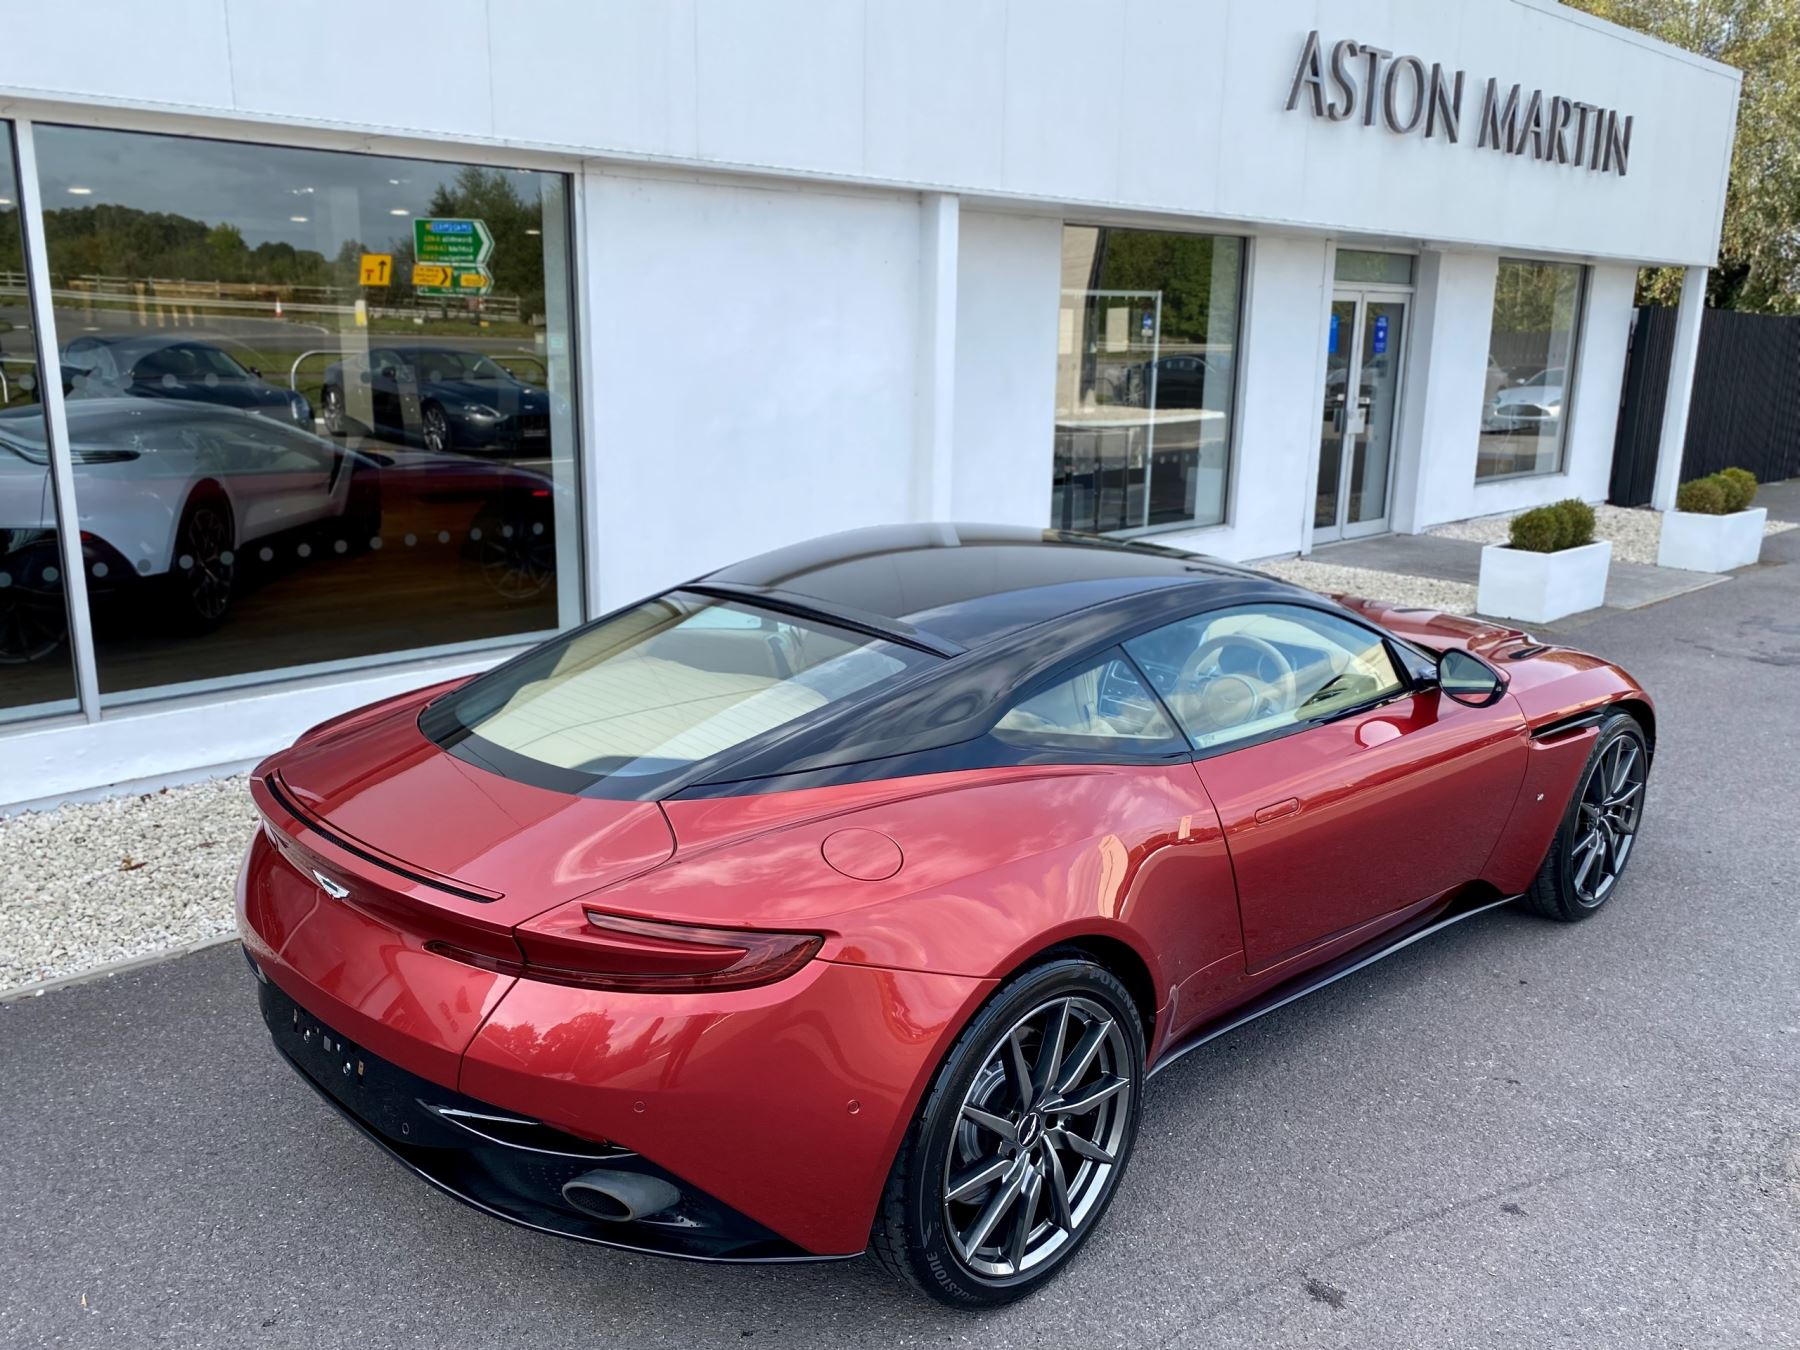 Aston Martin DB11 V12 Launch Edition Coupe. Bang & Olufsen Beosound Audio. Black brake calipers. Ventilated Seats image 9